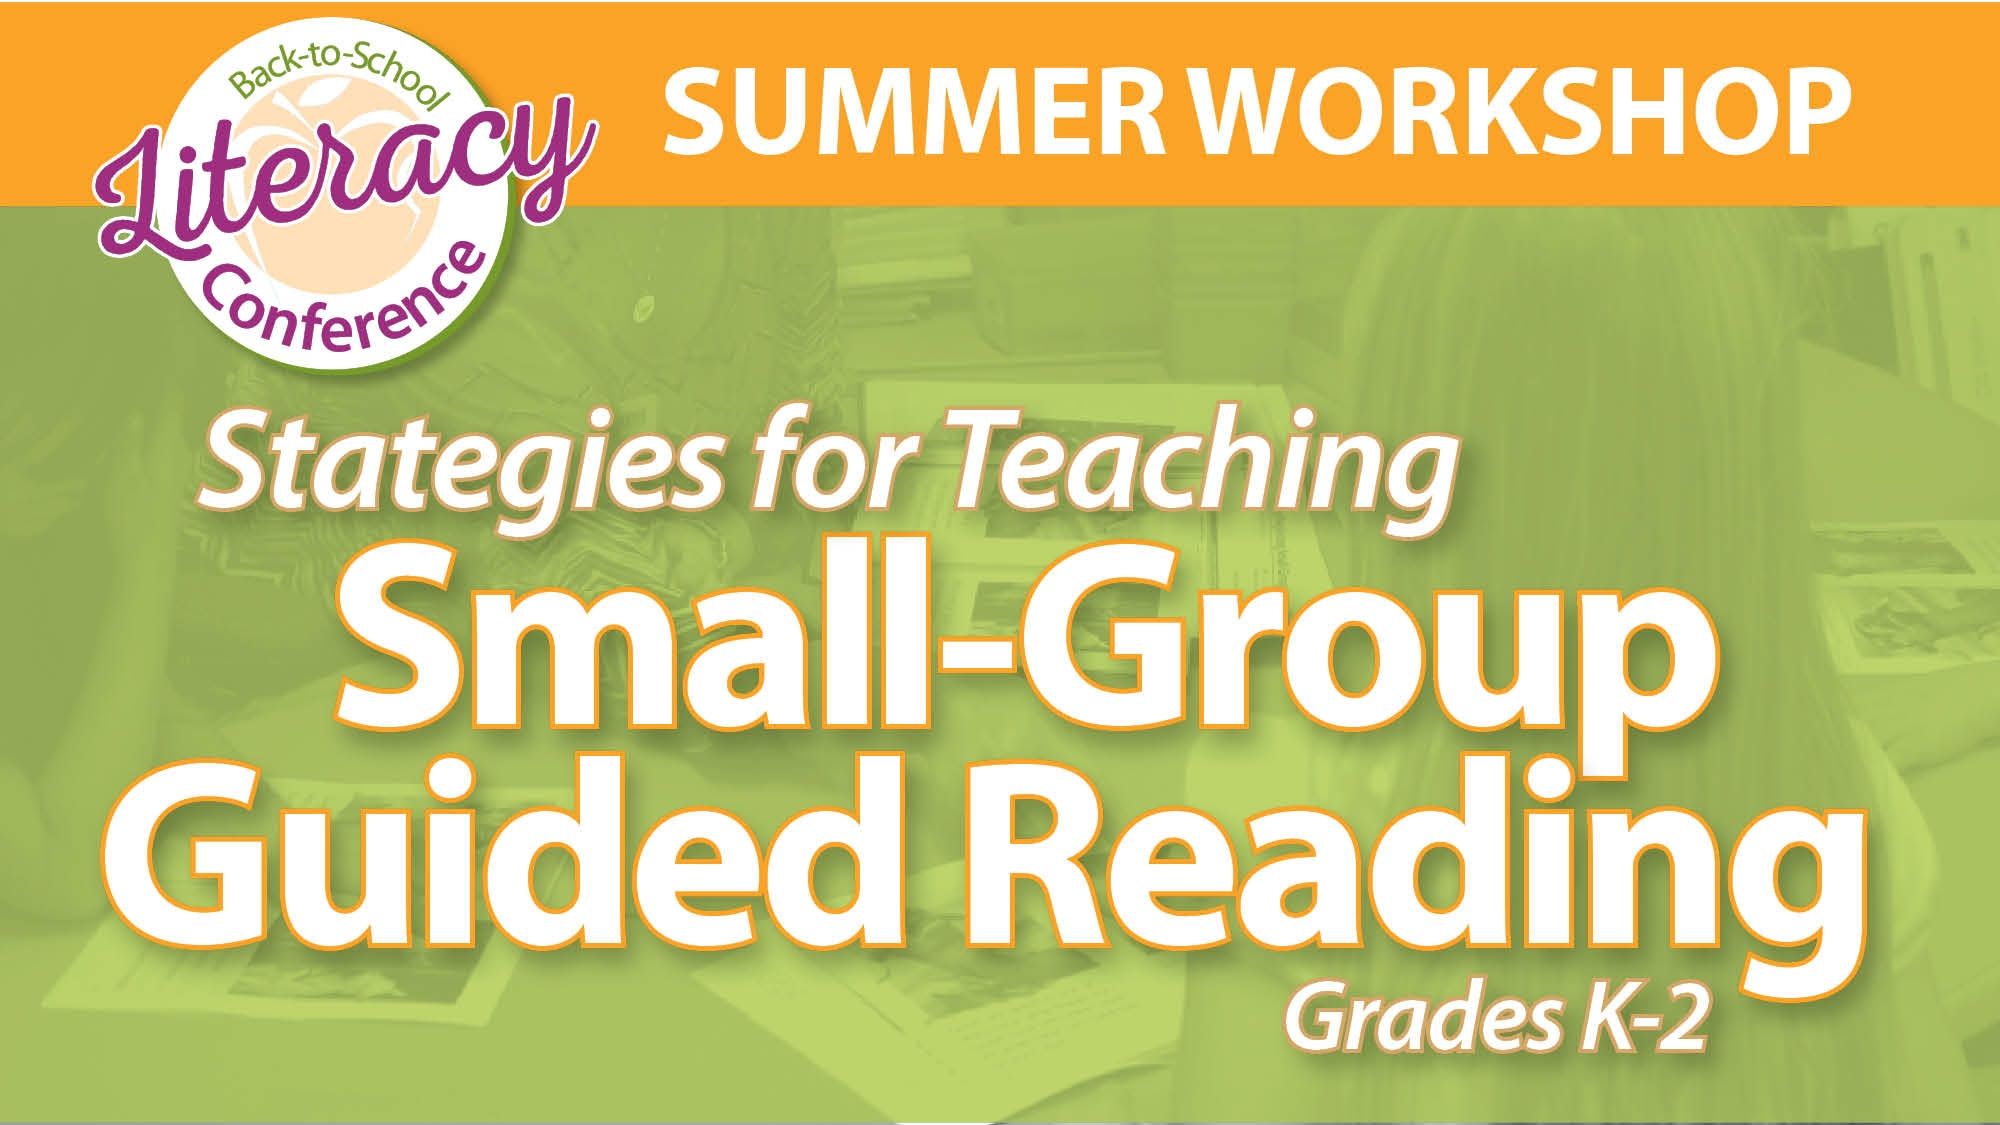 Back-to-School Literacy Conference Teaching Small-Group Guided Reading Grades K-2